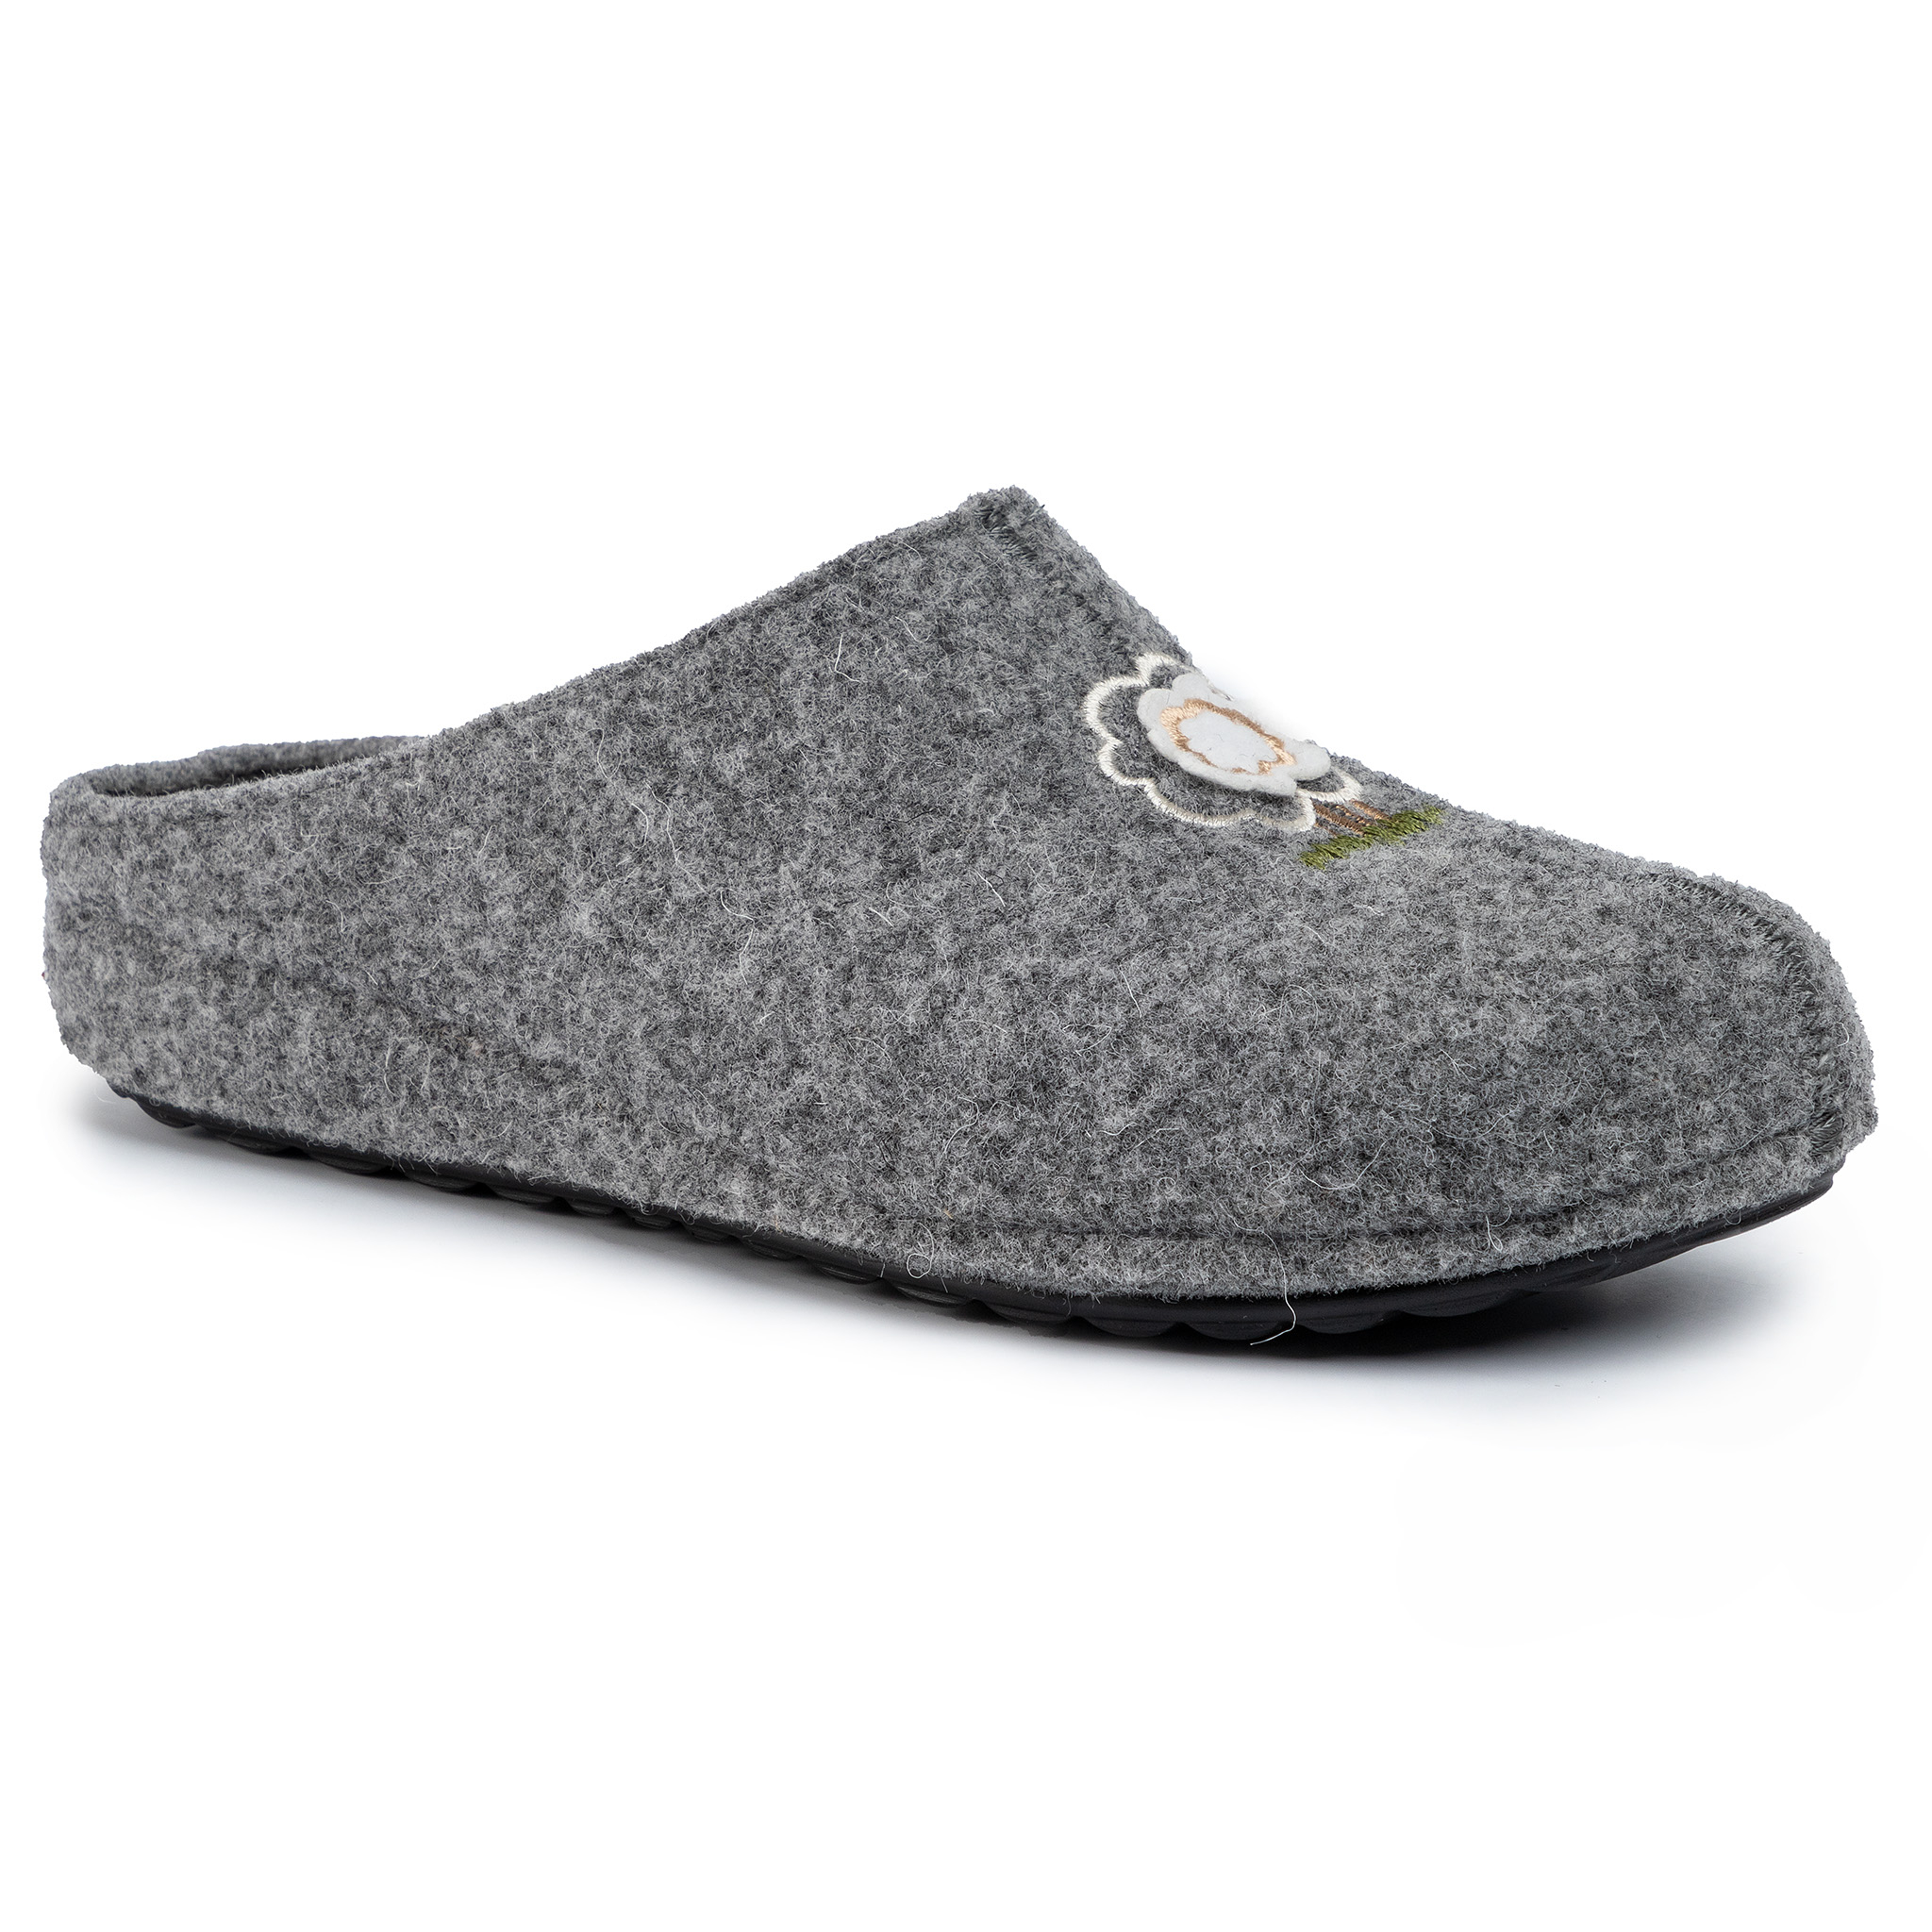 Chaussons PANTO FINO - EE267021 Szary/Beżowy